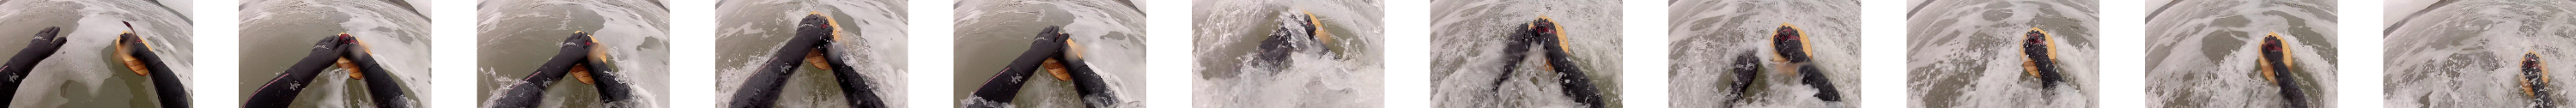 Photo sequence of bodysurfing at Newgale with Sakura Workshop Bodysurf Handplane